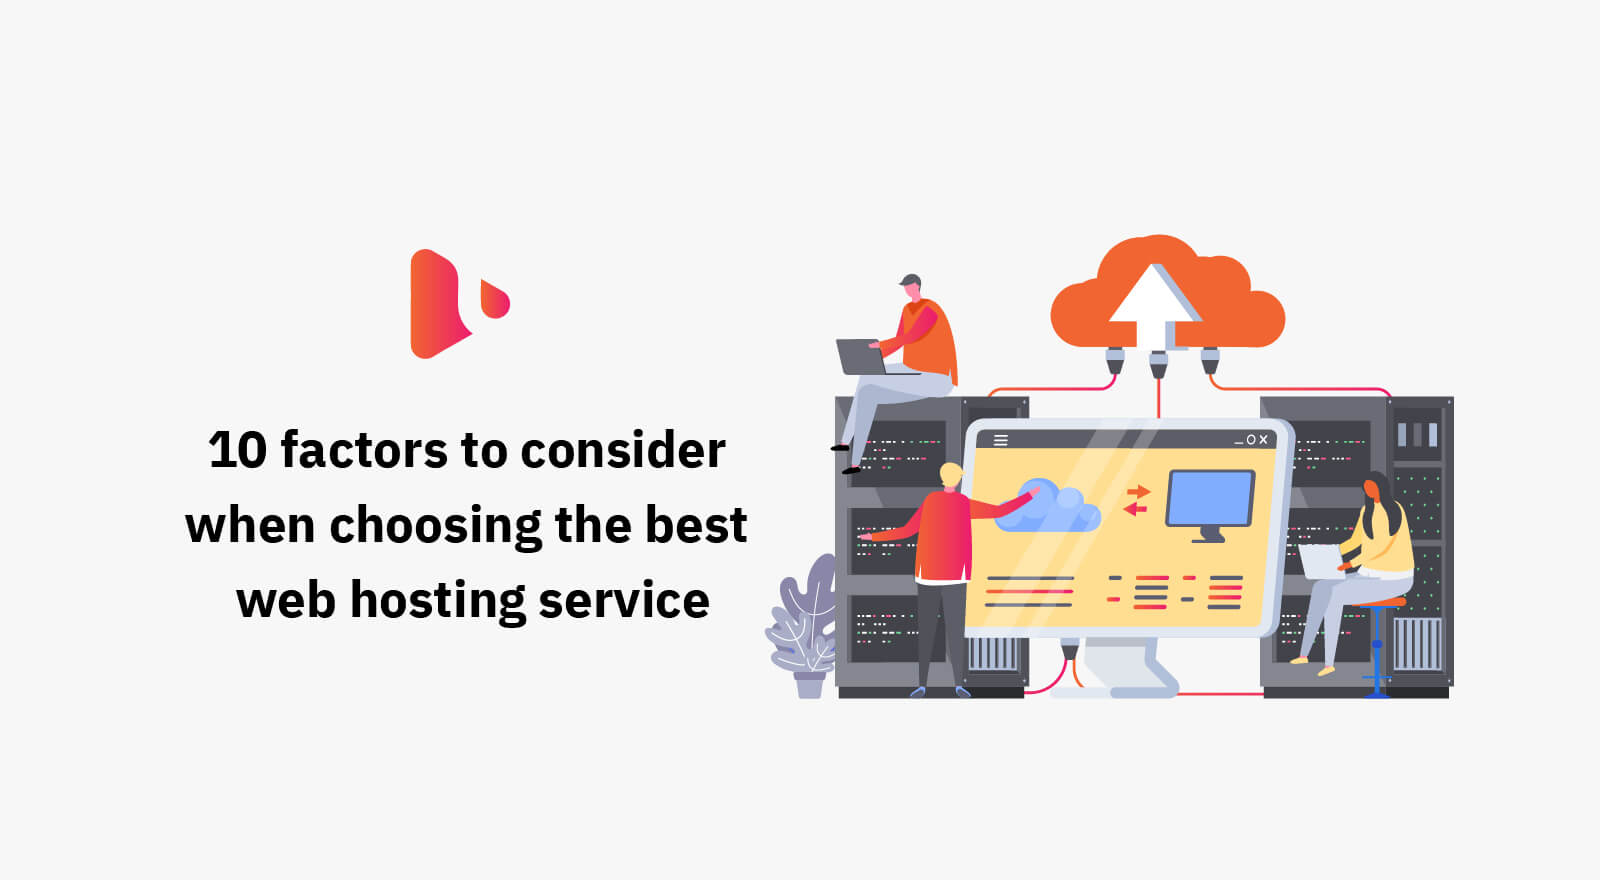 10 factors to consider when choosing the best web hosting service